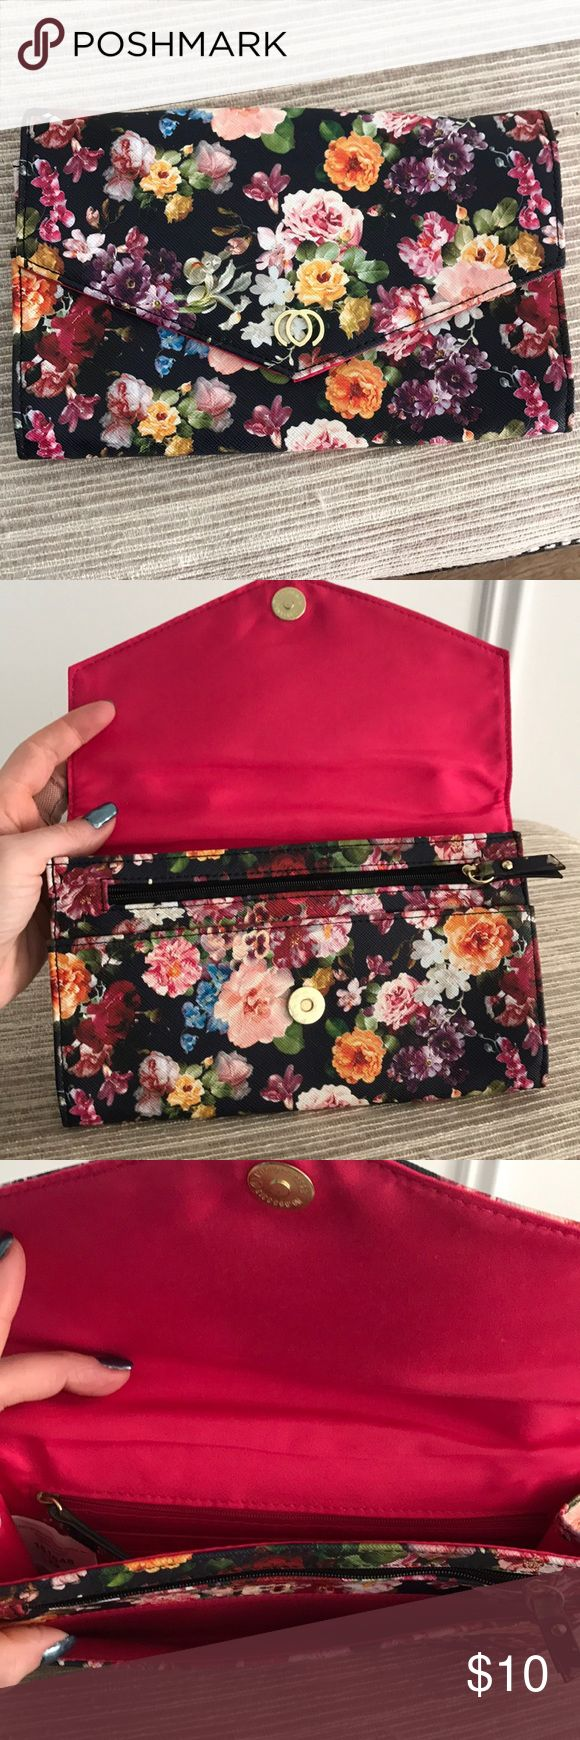 Floral clutch bag Floral clutch bag with lots of hidden pockets and zippers and a very handy card holder built into bag Bags Clutches & Wristlets